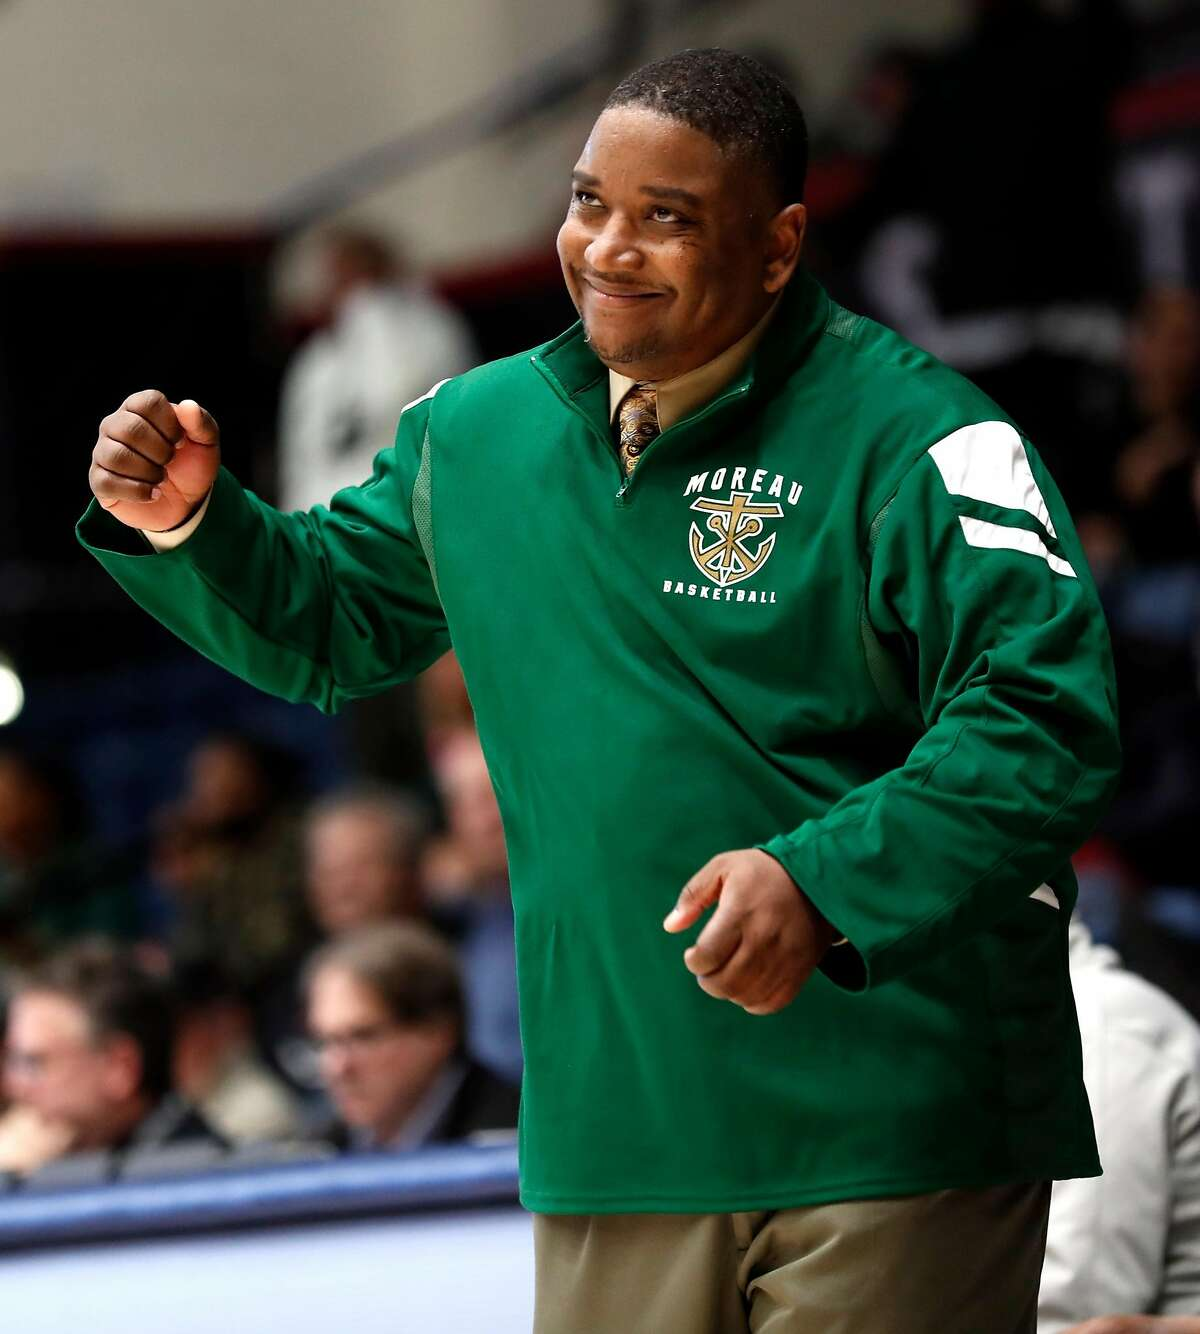 Moreau Catholic-Hayward head coach Frank Knight has been a government teacher for 21 years and as part of the curriculum, he gets all of his students and players to register to vote.